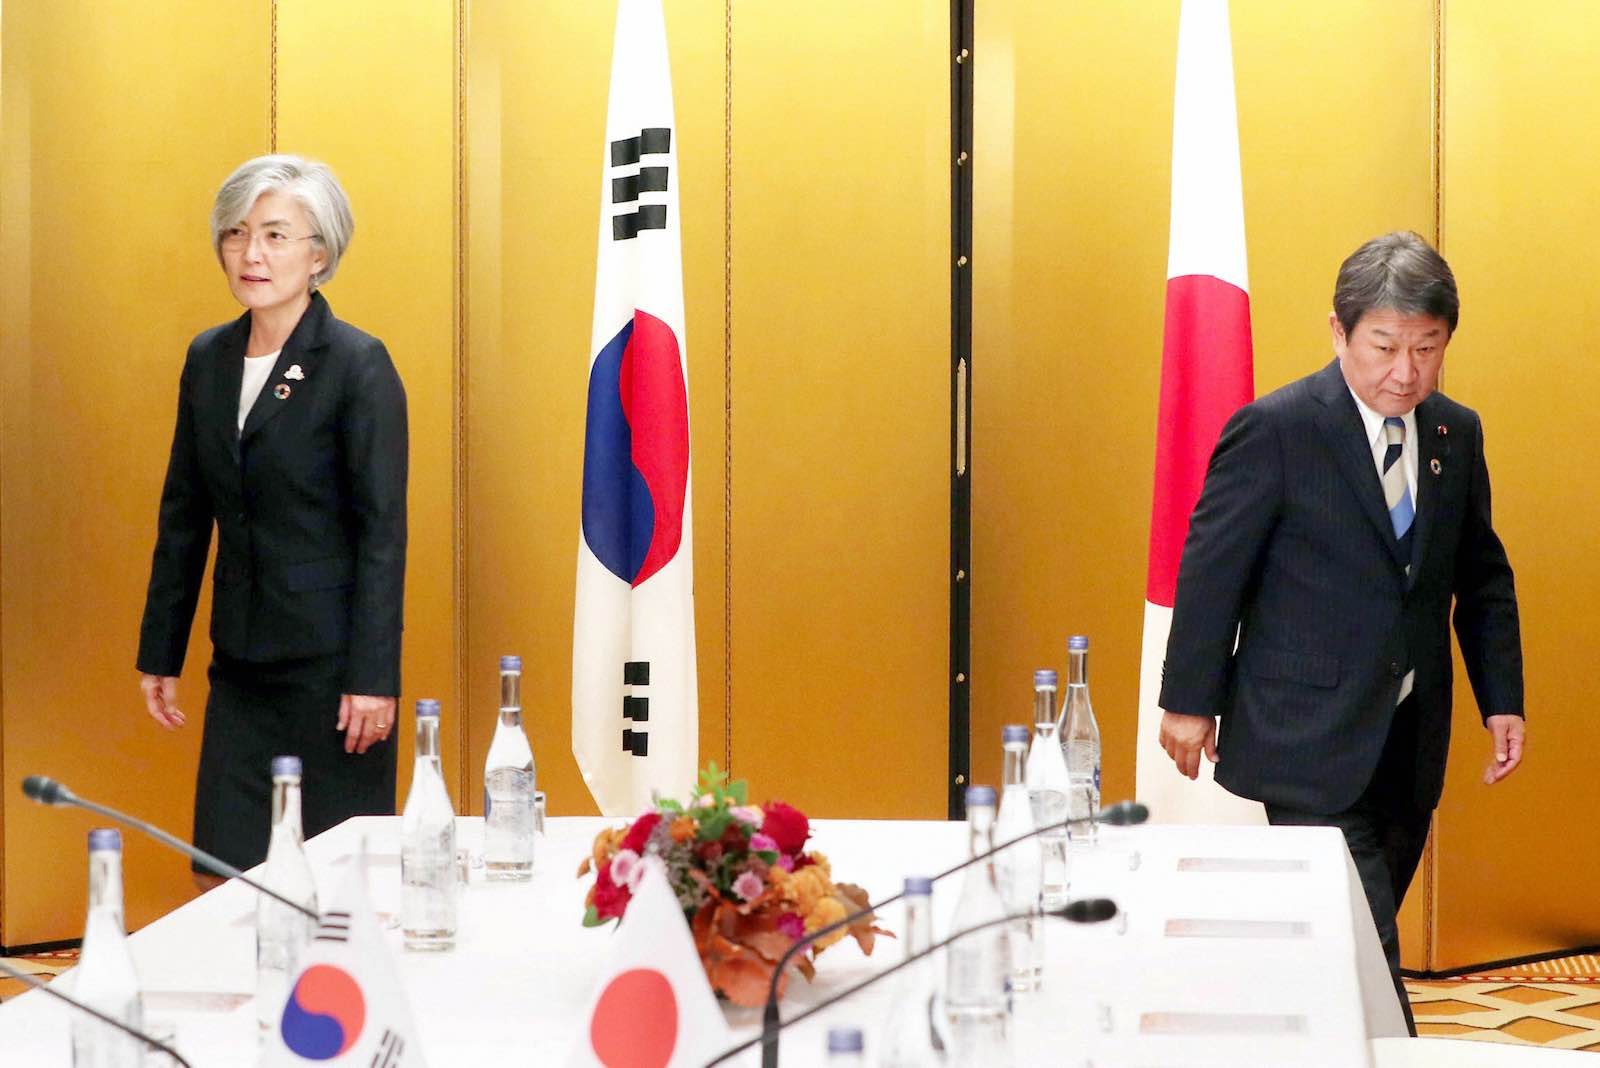 South Korean Foreign Minister Kang Kyung-wha (L) and Japanese Foreign Minister Toshimitsu Motegi meeting on the sidelines of the G20 Foreign Ministers Meeting, 23 November 2019 in Nagoya, Japan (The Asahi Shimbun via Getty Images)